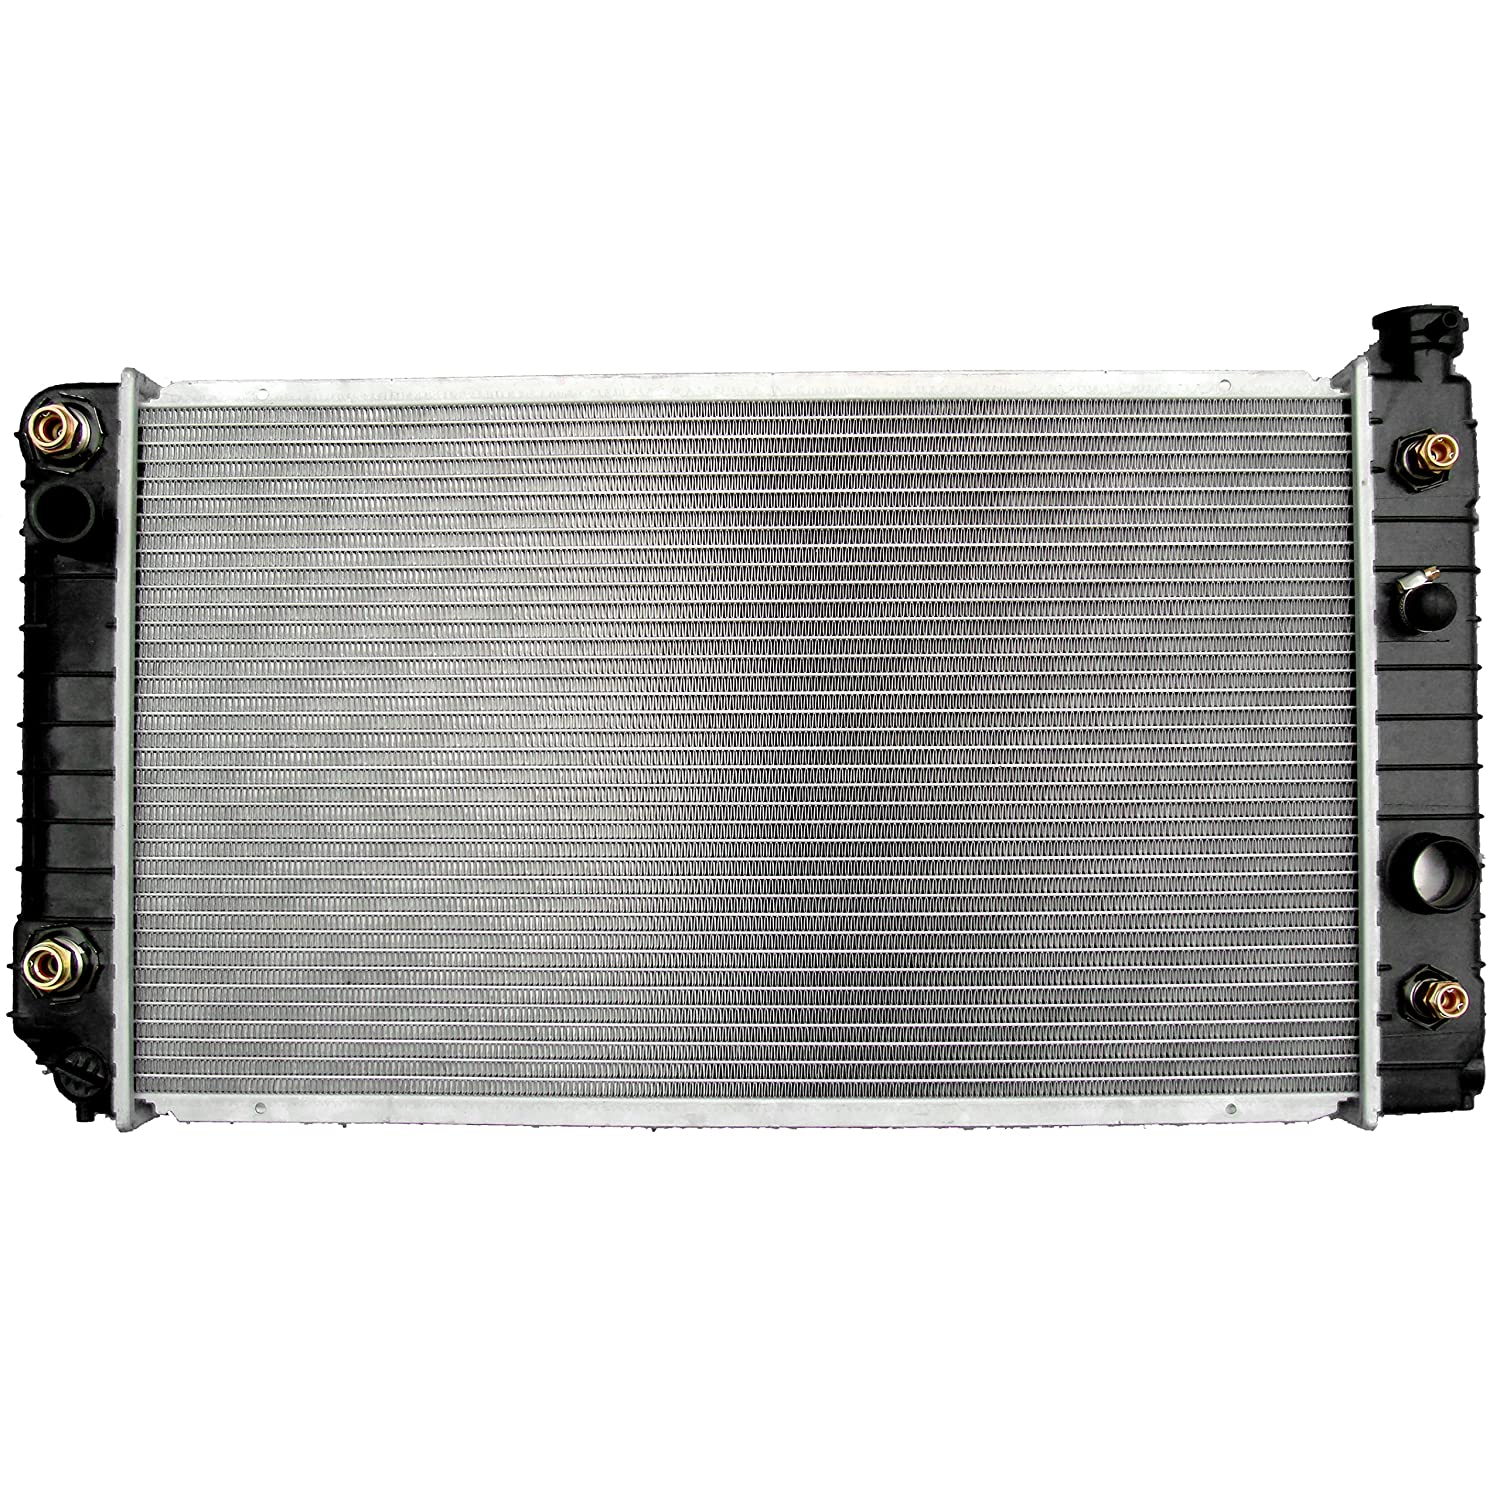 ECCPP 0705 Radiator fits for 1991-1993 GMC Sonoma 4.3L 1988-1994 Chevrolet S10 4.3L 1994 GMC Jimmy Sport Utility 4-Door 4.3L 069374-5211-1113092